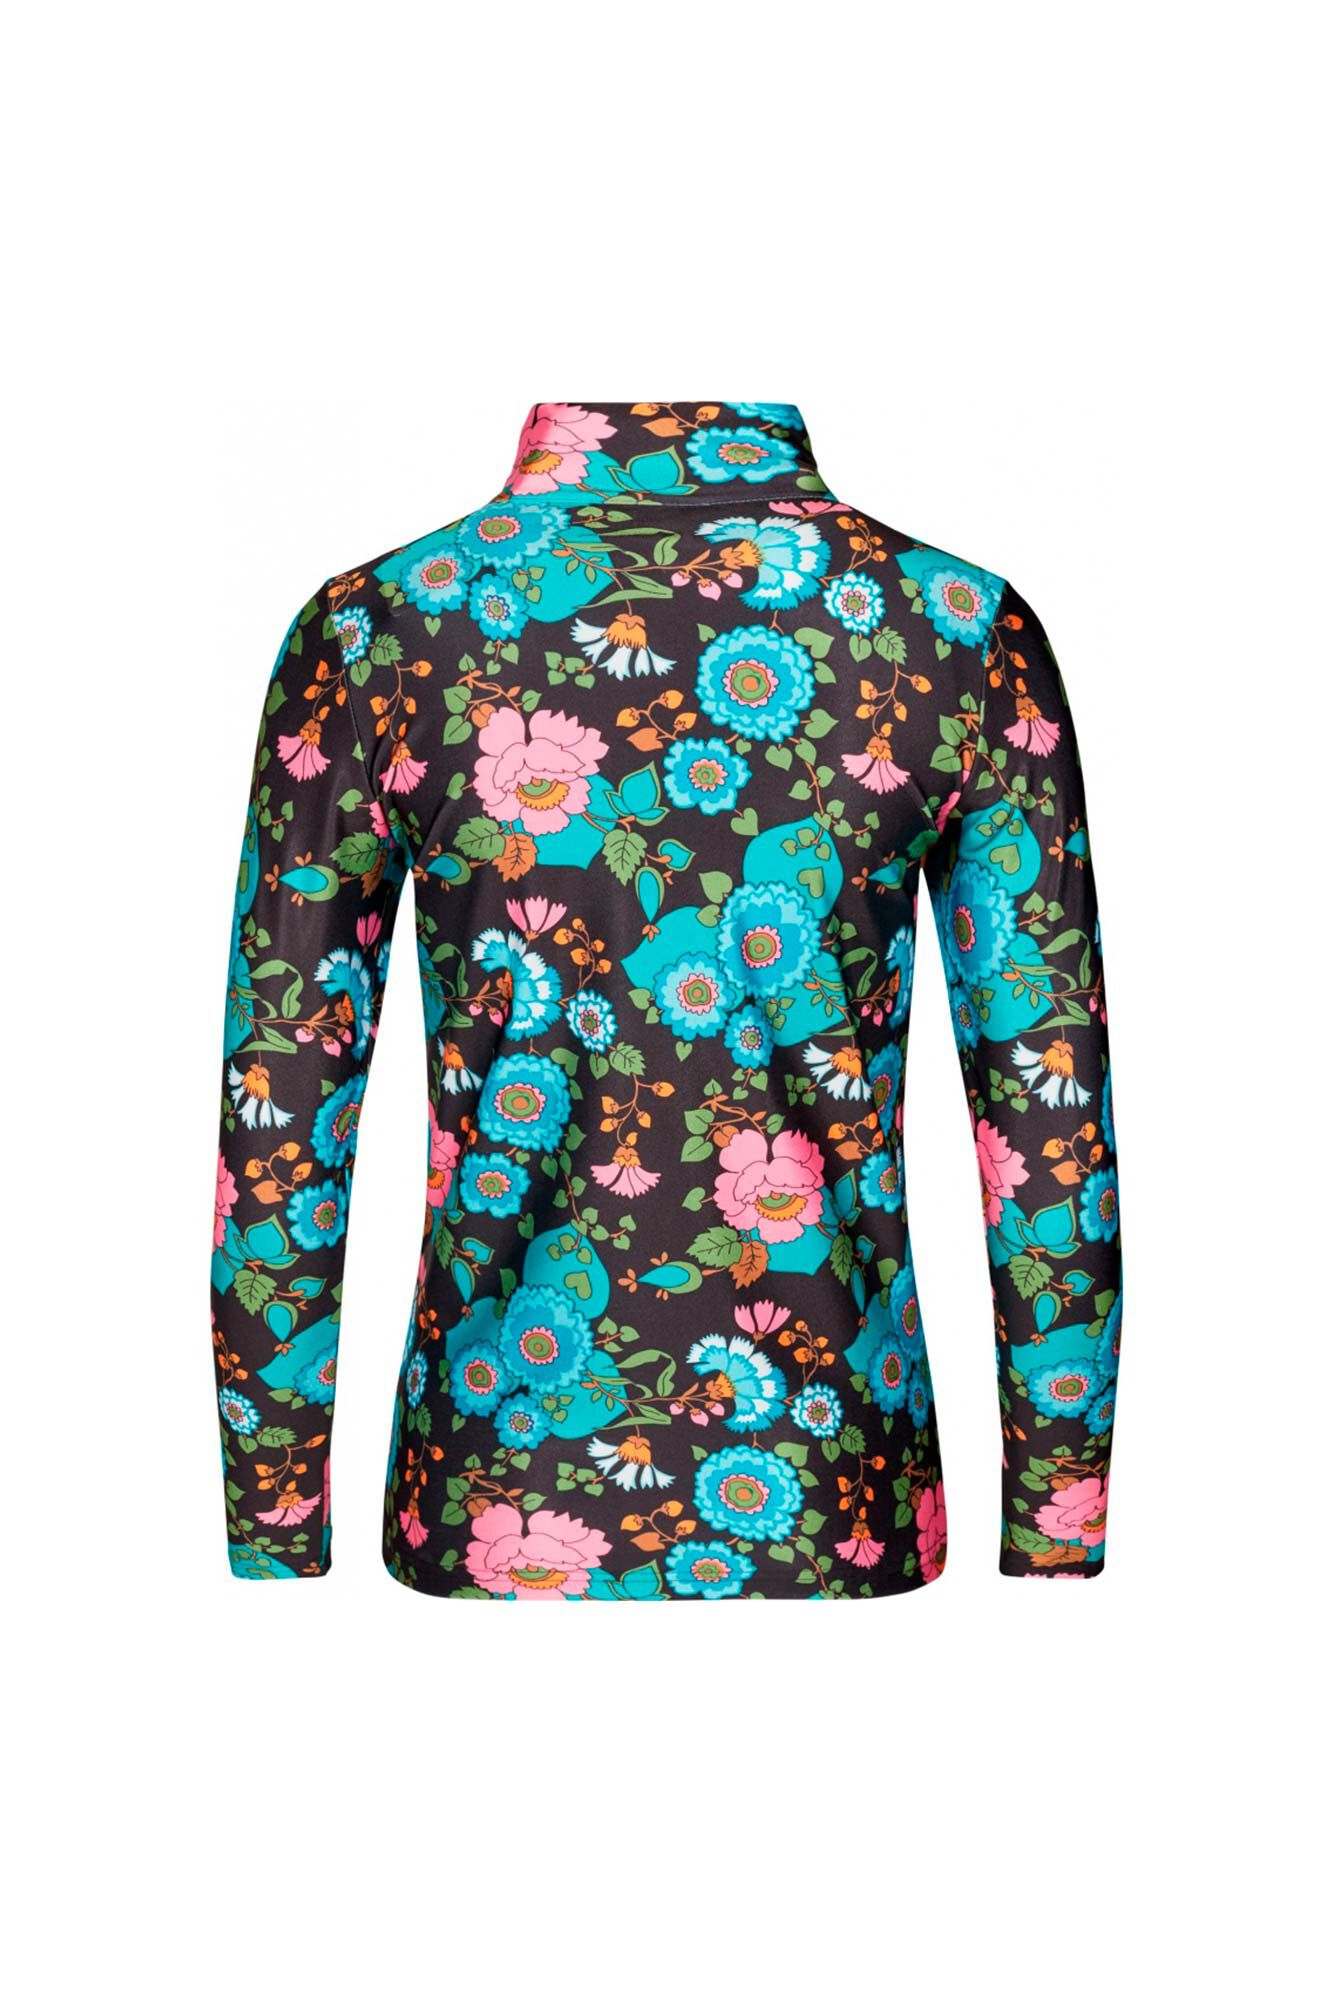 Tour de shirt FA900031-1, BLACK FLOWER